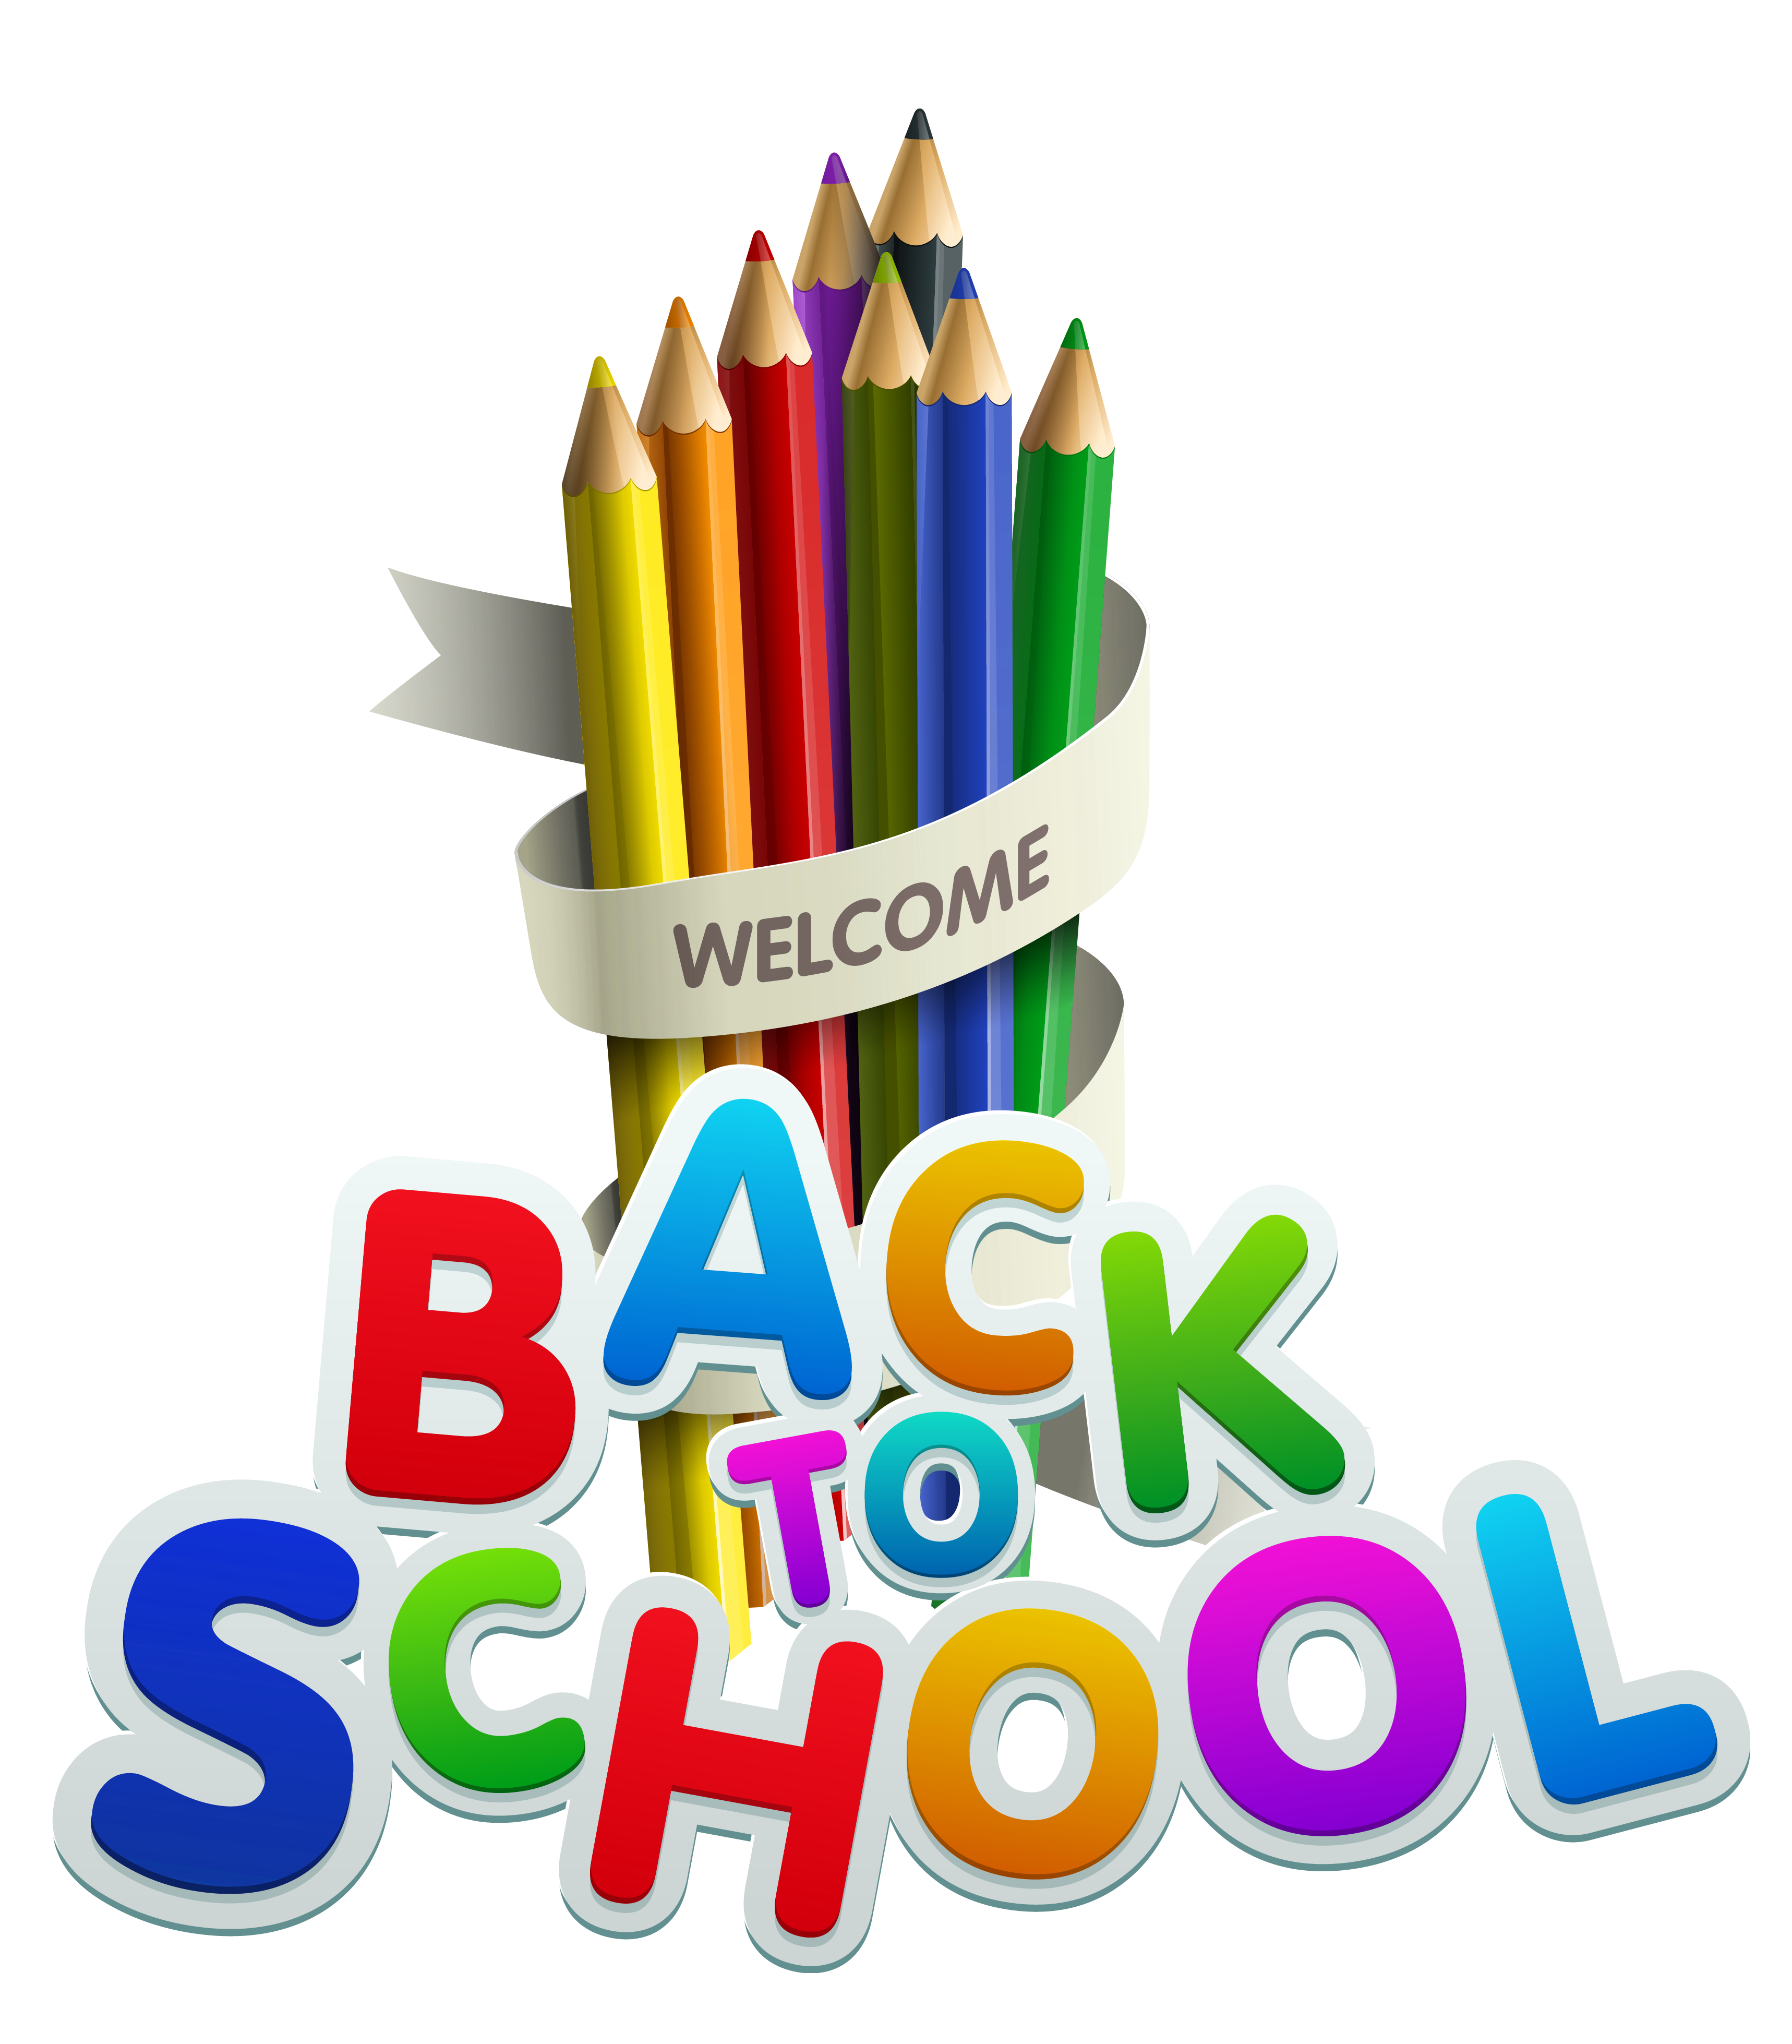 back to school pictures  images  graphics for facebook night owl clipart transparent night owl clipart transparent